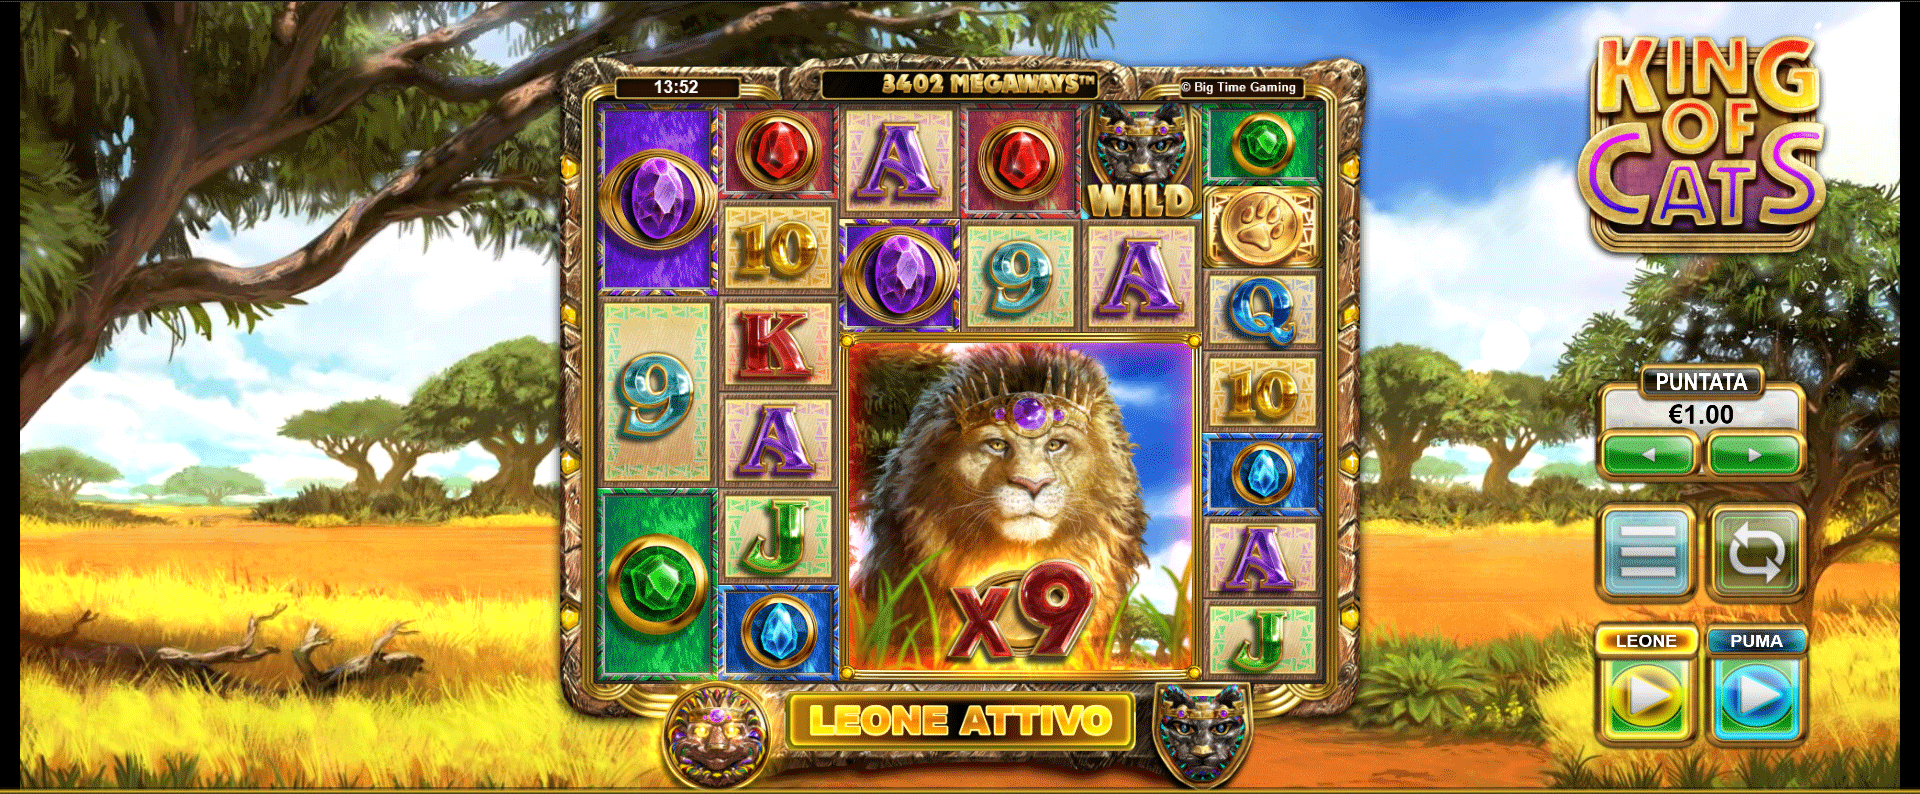 Slot King of Cats